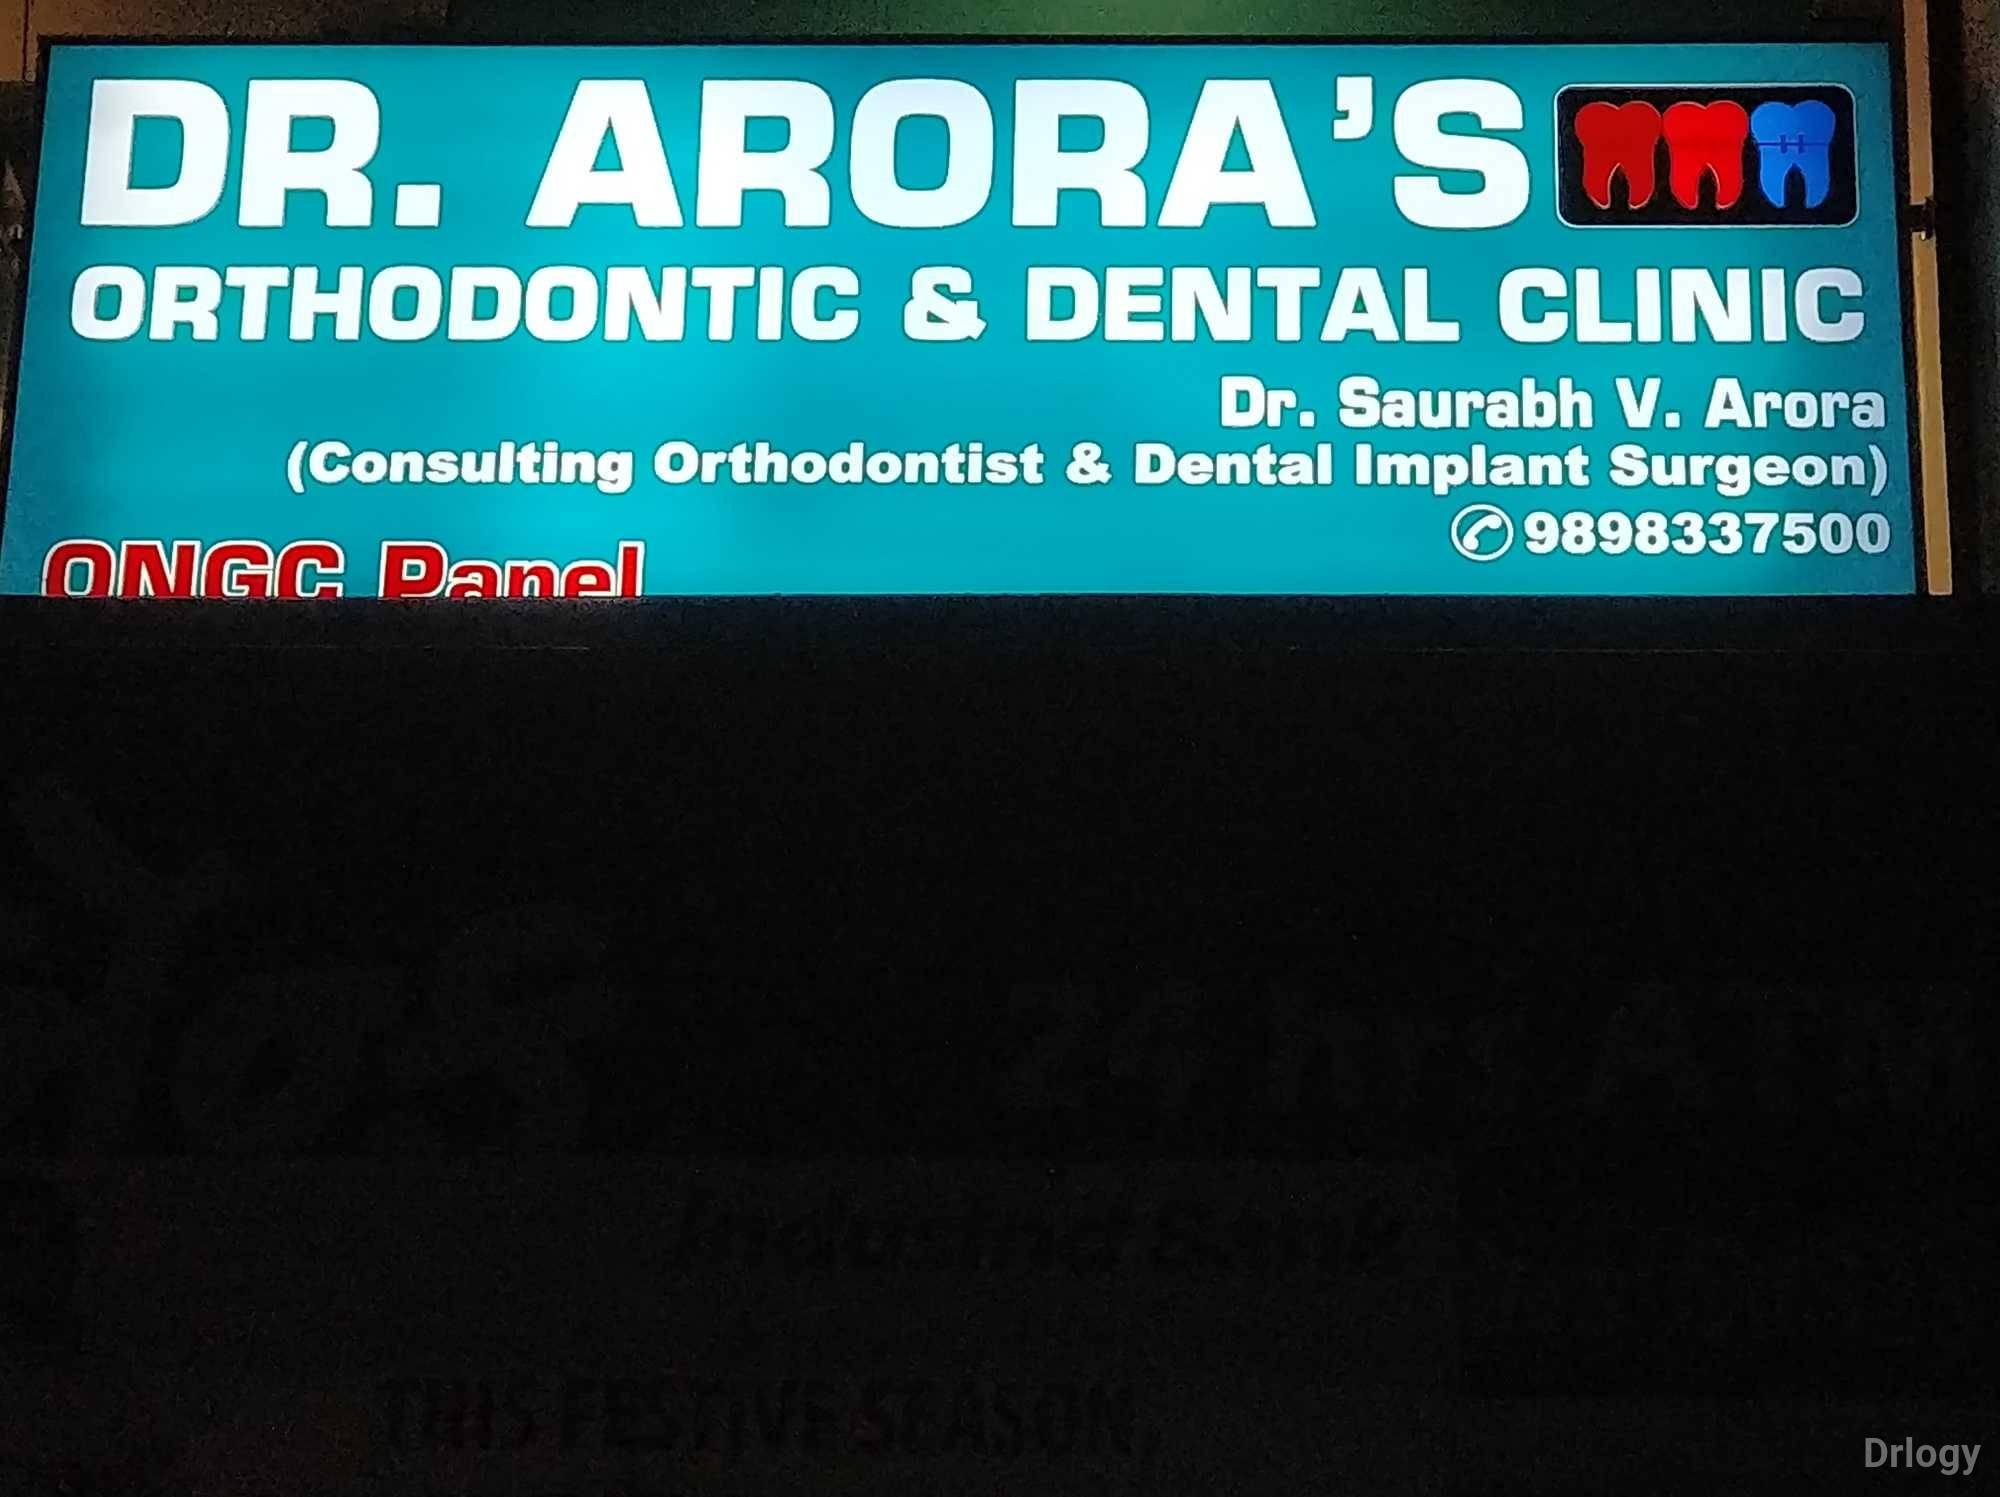 Orthodontic and dental clinic in Ahmedabad